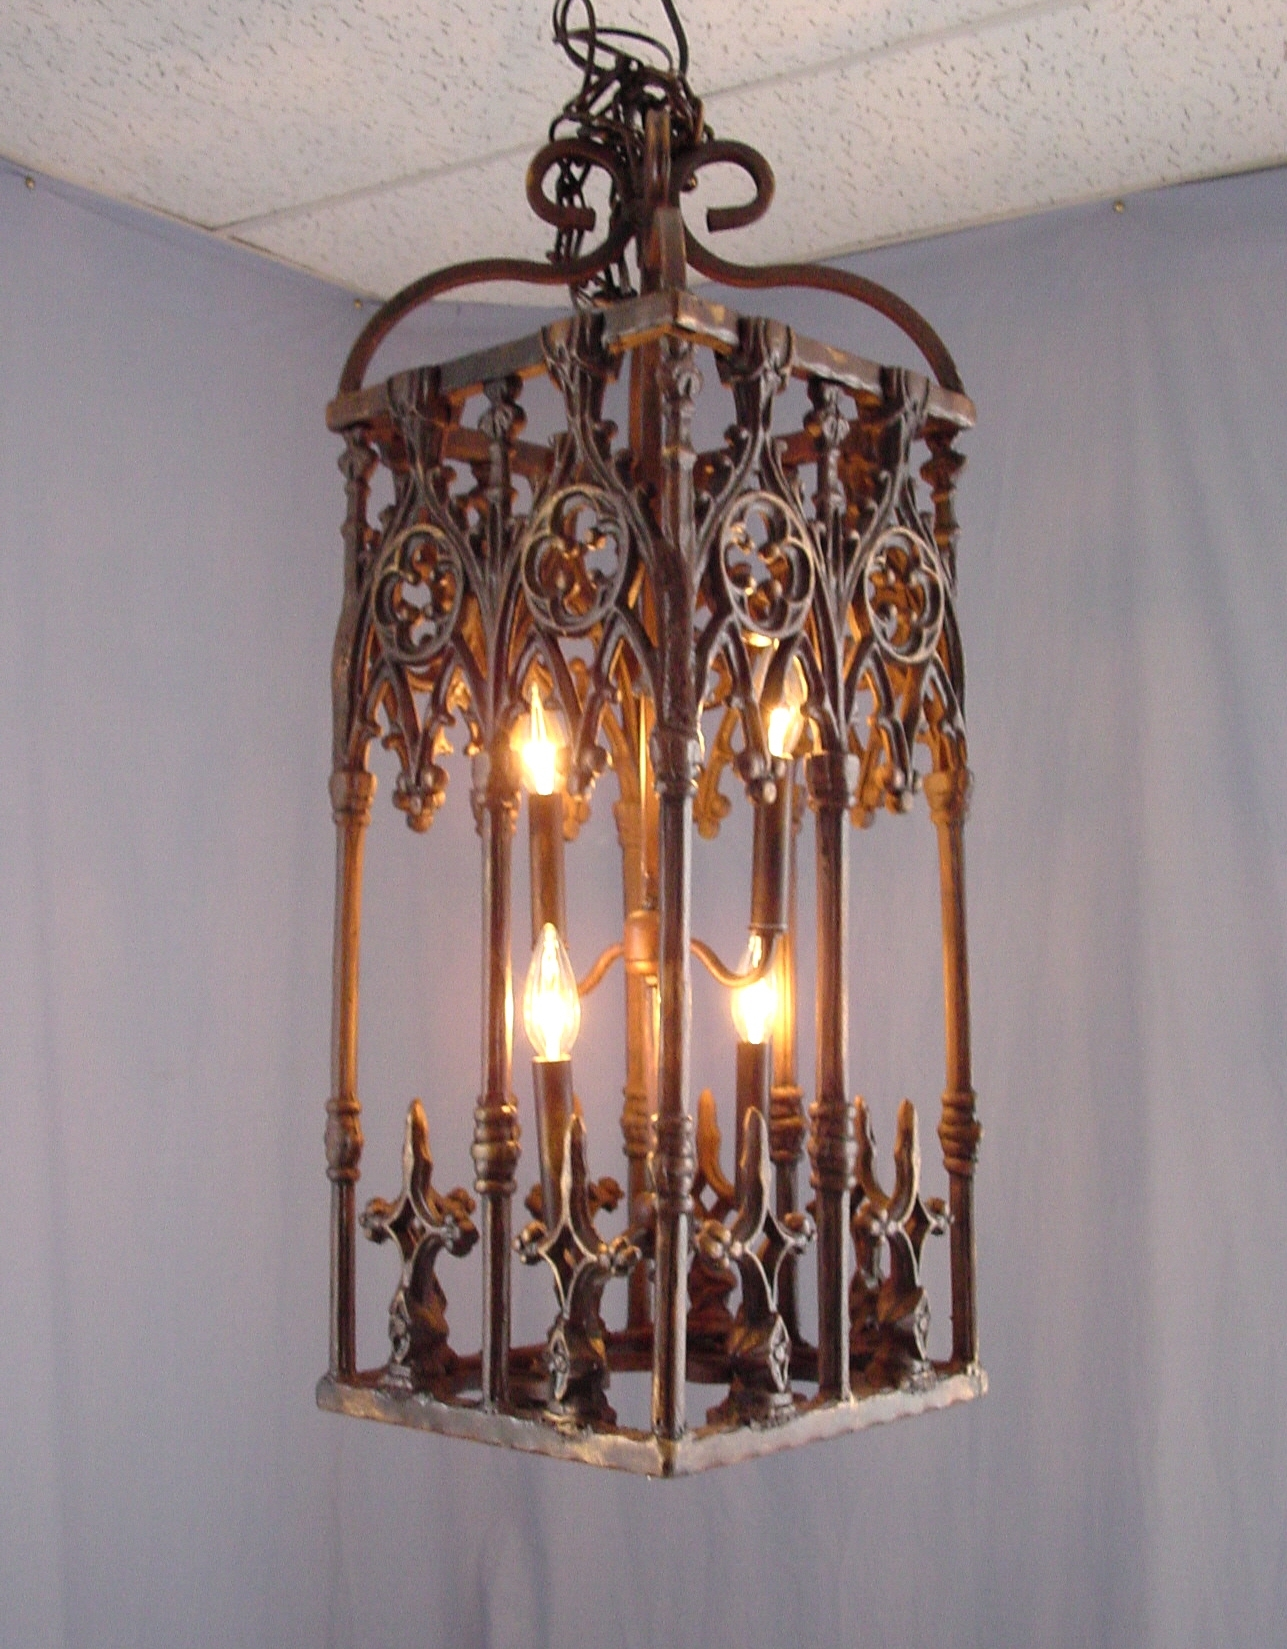 Wrought Iron Antler Chandeliers Lighting Rustic Tuscan Pertaining To Vintage Wrought Iron Chandelier (Image 15 of 15)